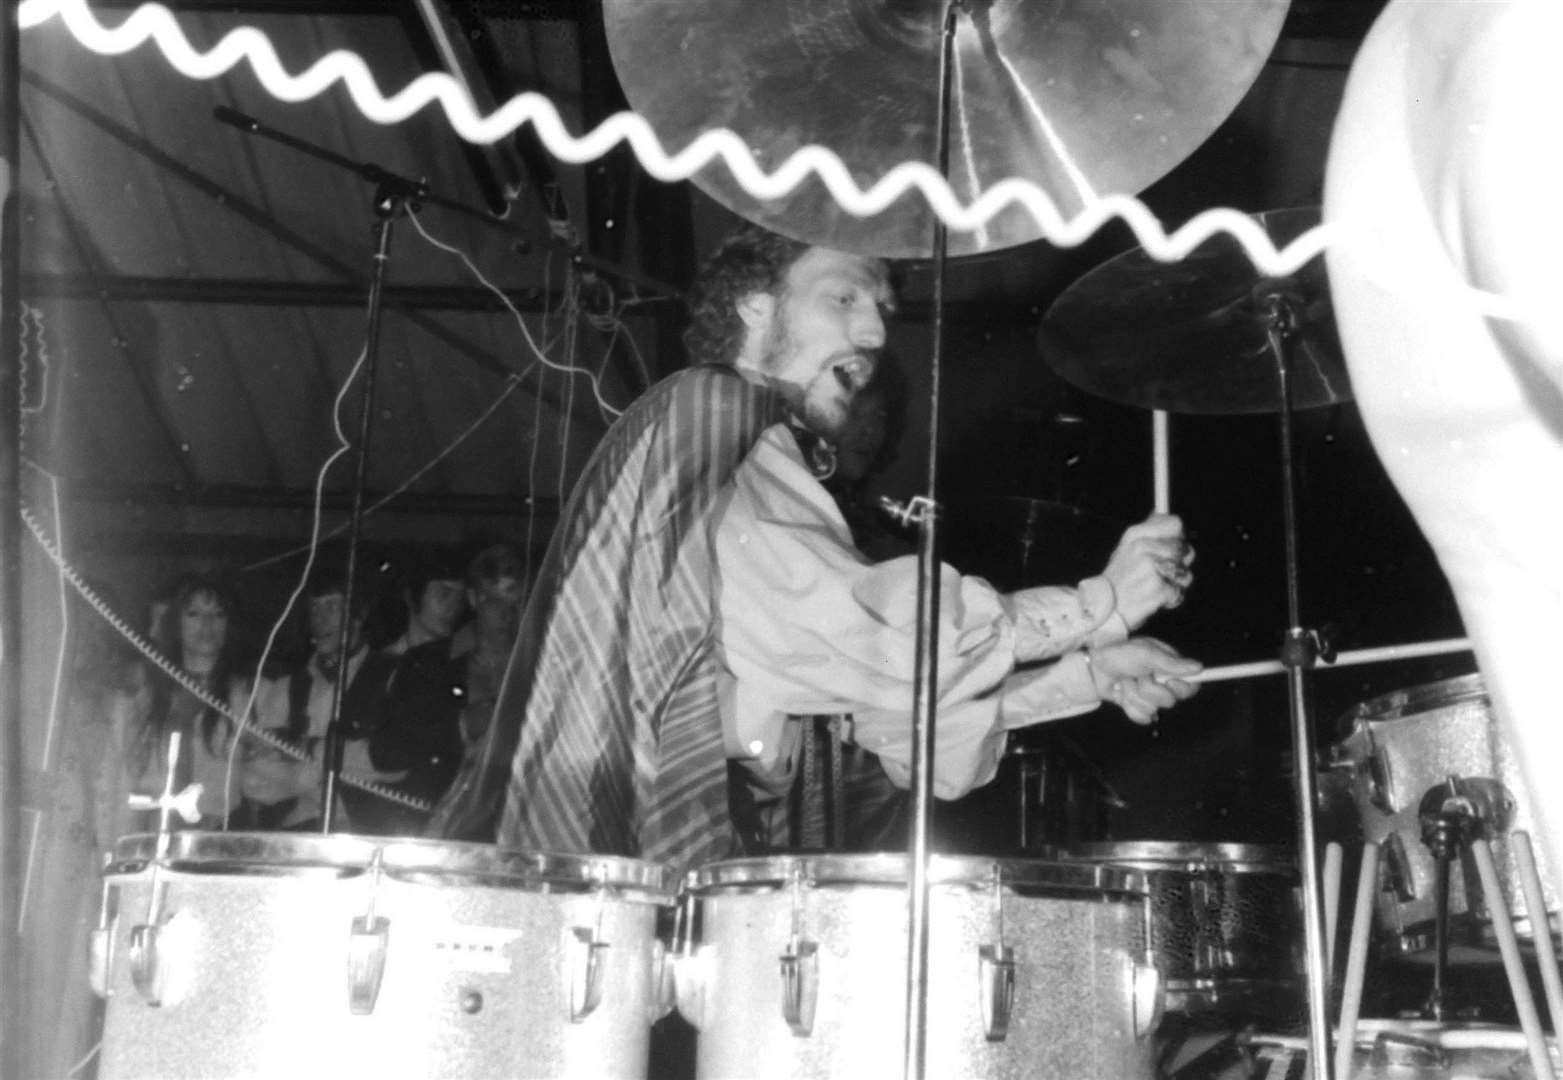 Tribute paid to legendary drummer Ginger Baker who played in Spalding